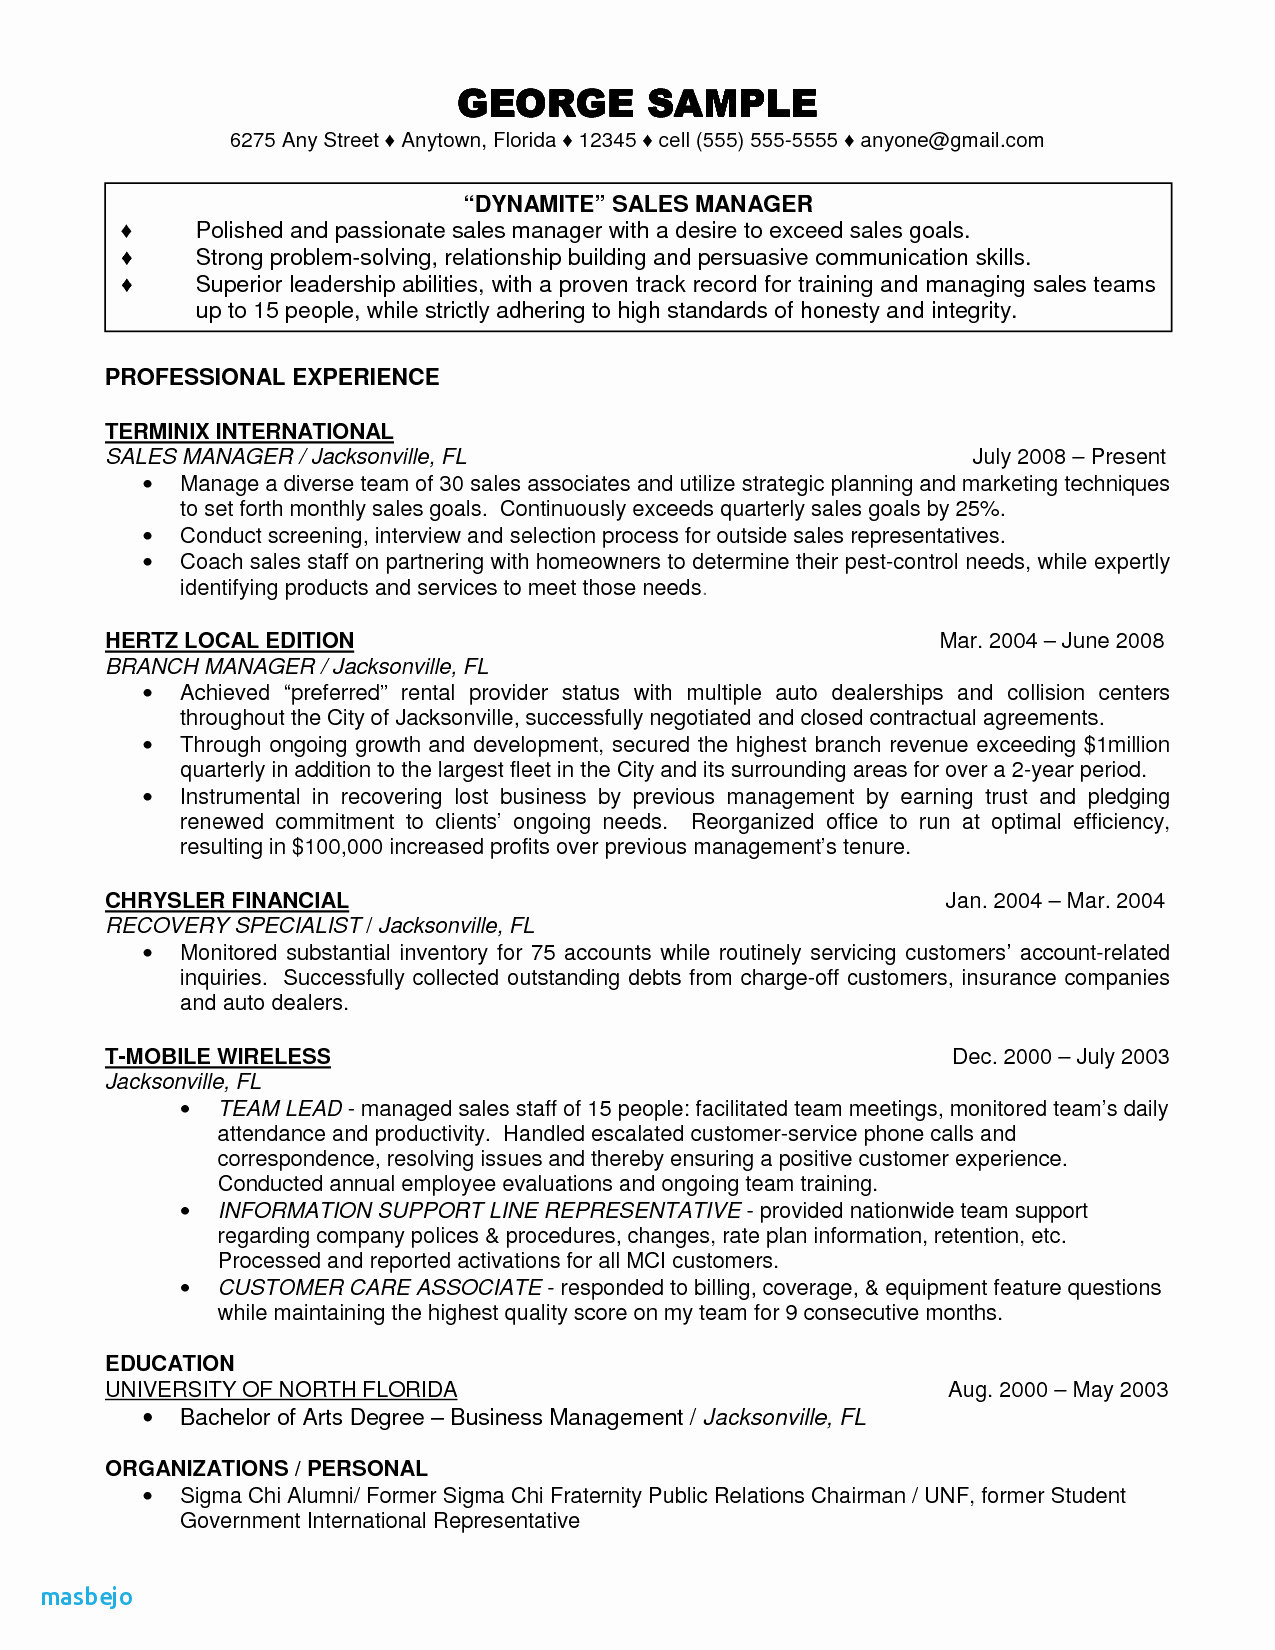 Pest Control Inspection Report Template Unique Pest Control Resume Nmdnconference Com Example Resume And Cover